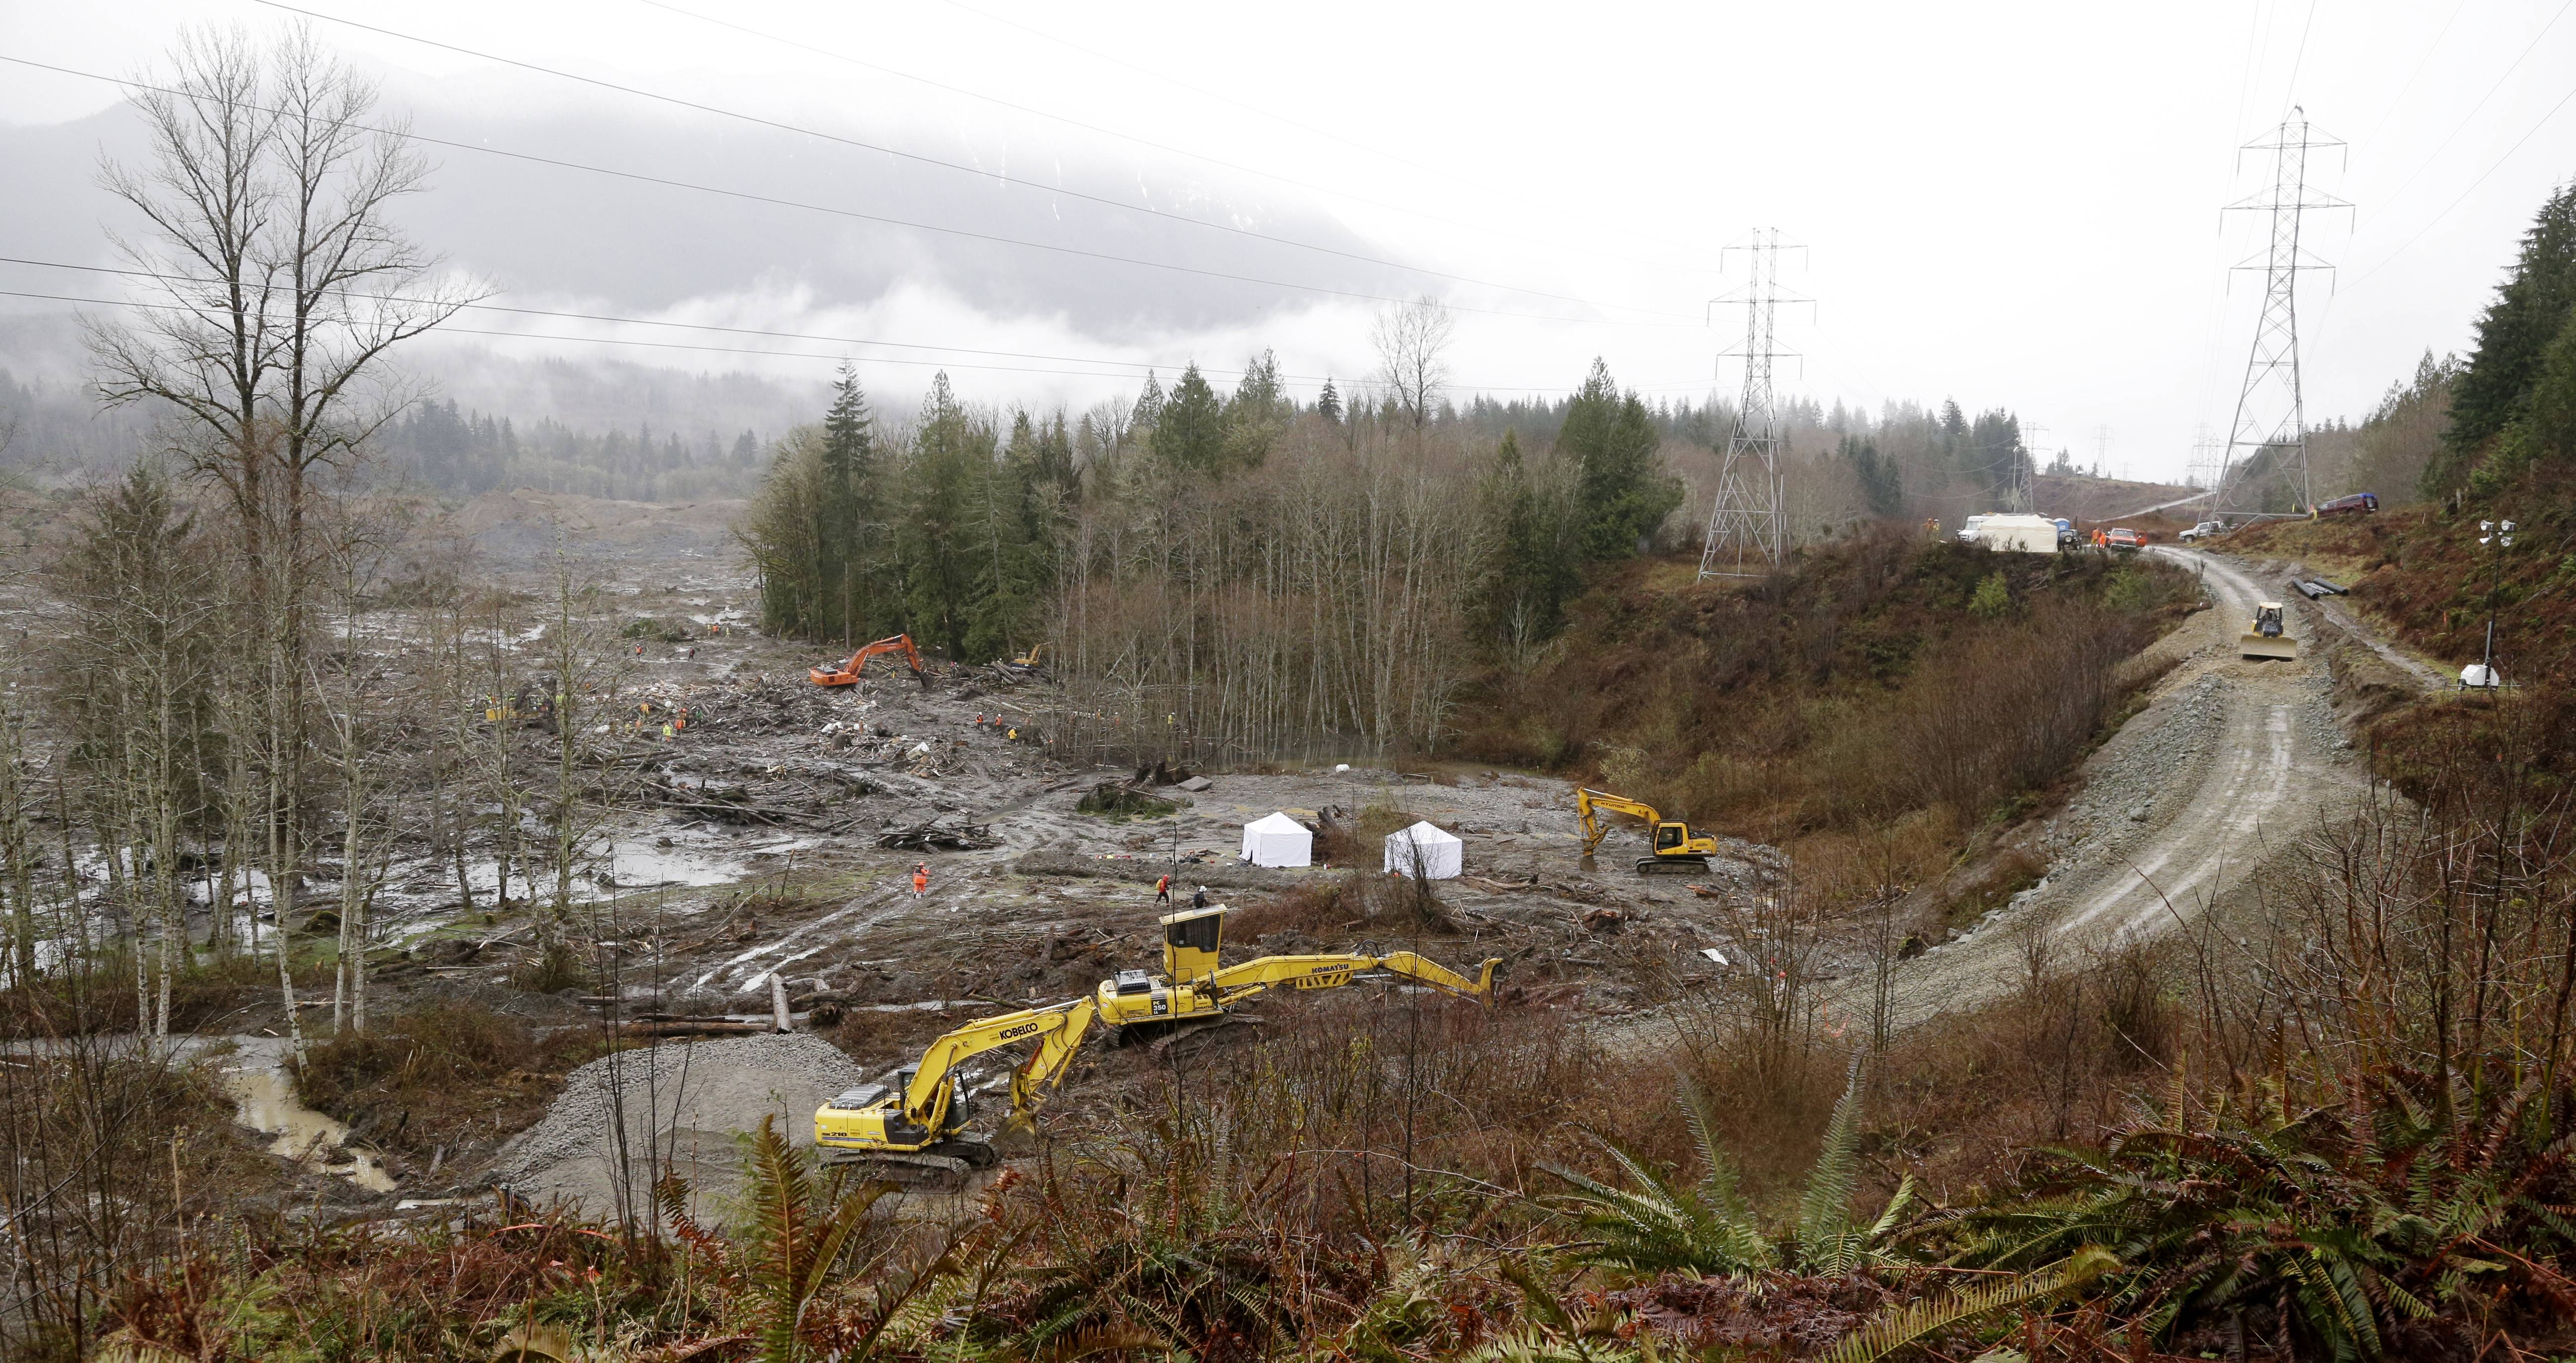 A road continues to be built at right to connect the two sides of the scene of a deadly mudslide to allow searchers though in Oso, Wash. Besides the more than two dozen bodies already found, many more people could be buried in the debris pile left from the mudslide one week ago.